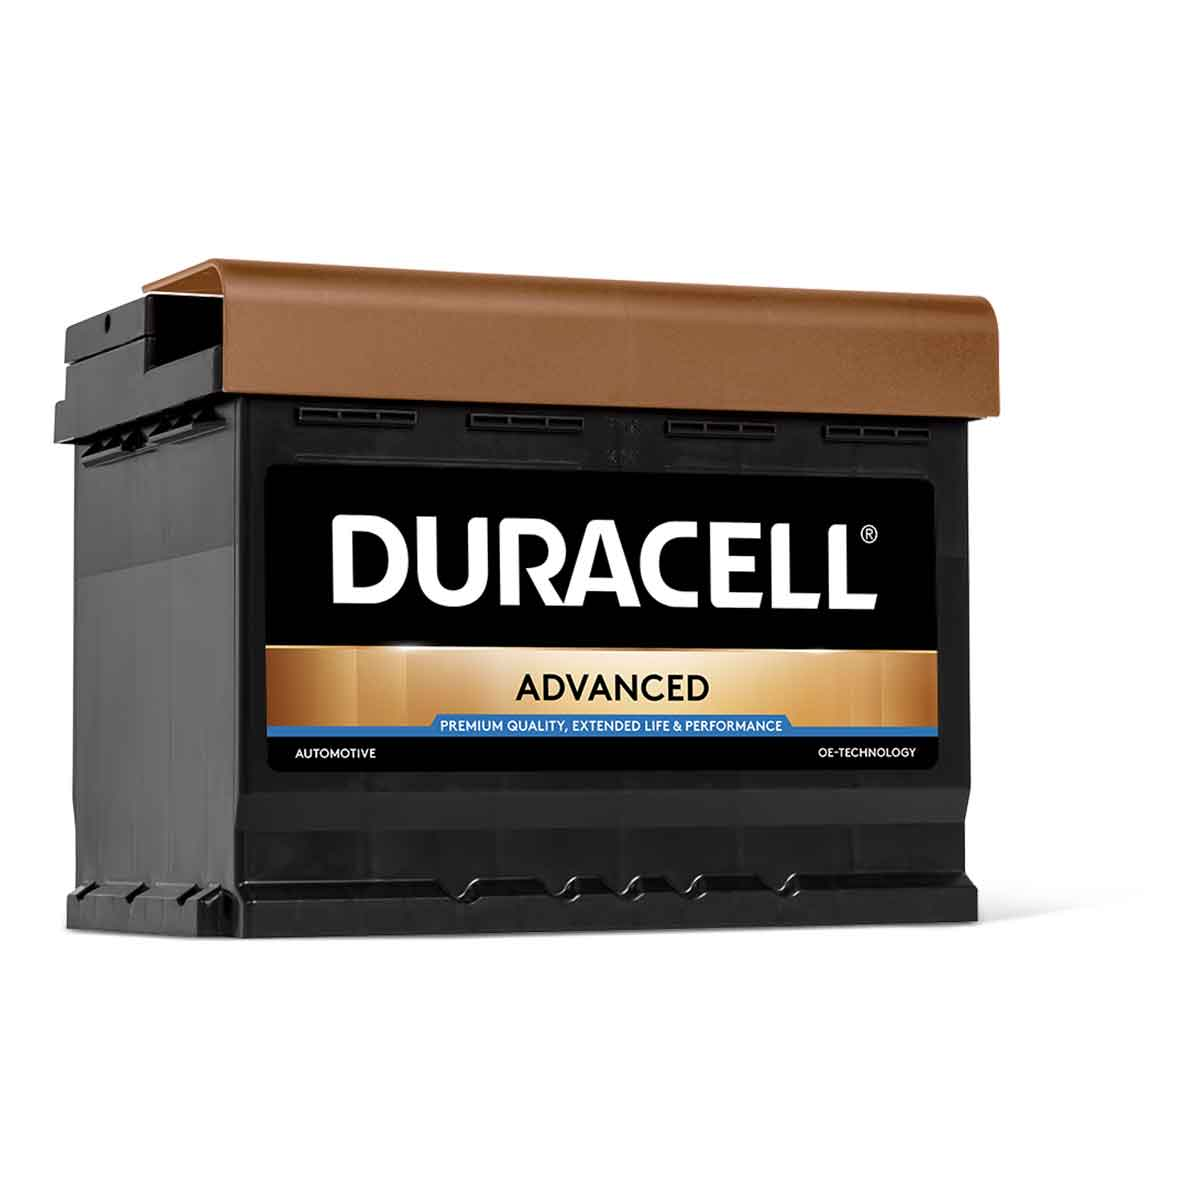 Duracell-Advanced_range.jpg